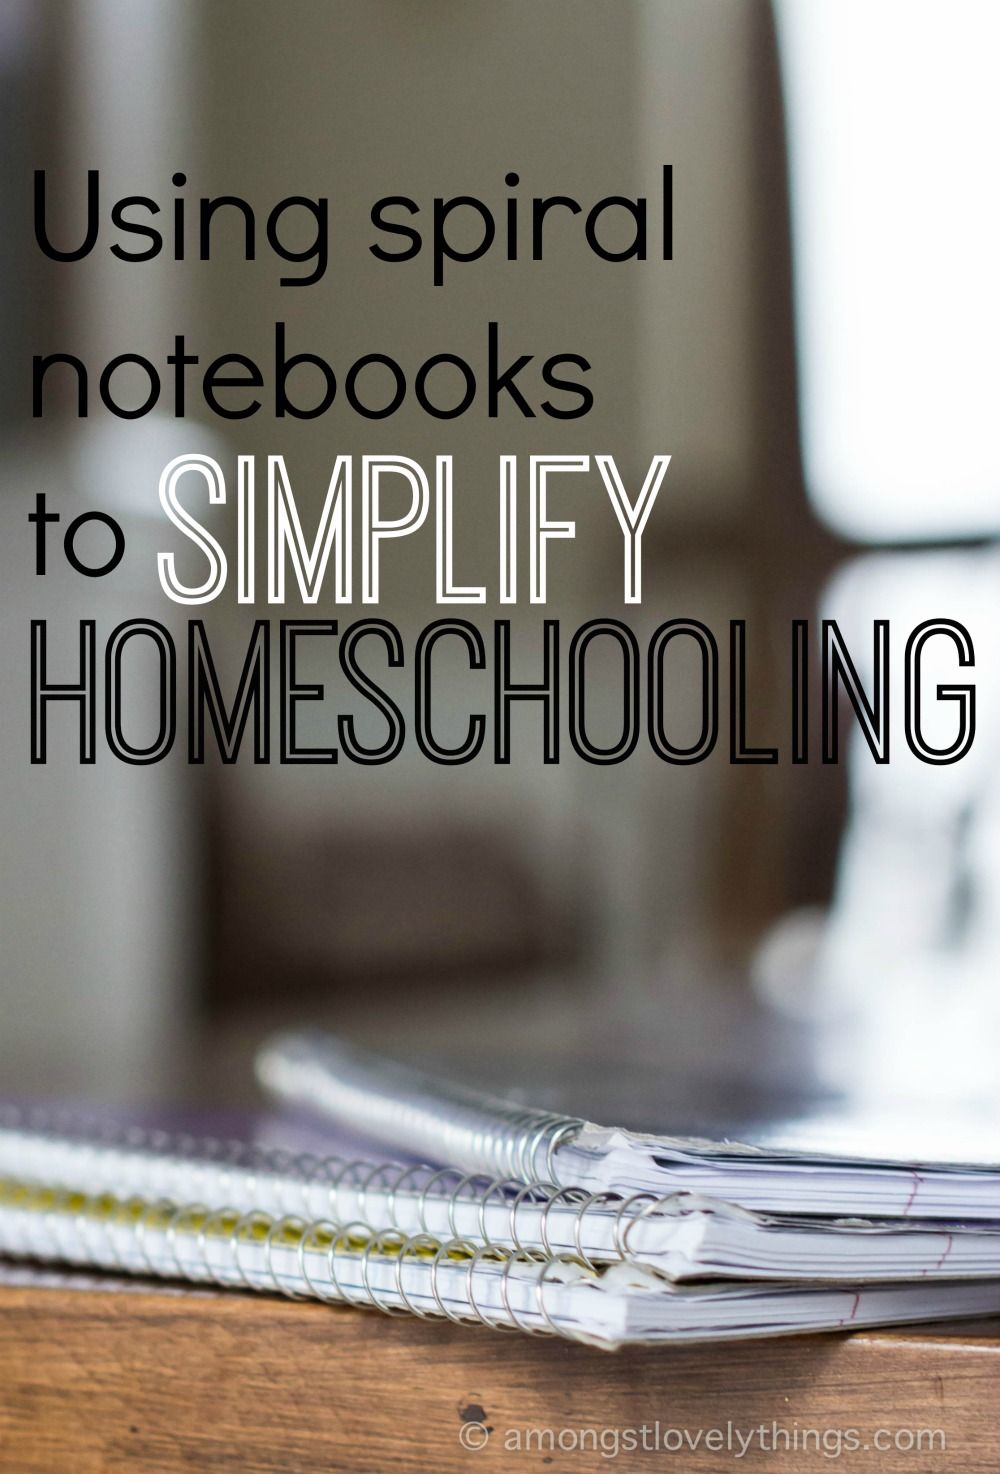 How I'm Using Spiral Notebooks to Simplify Homeschooling